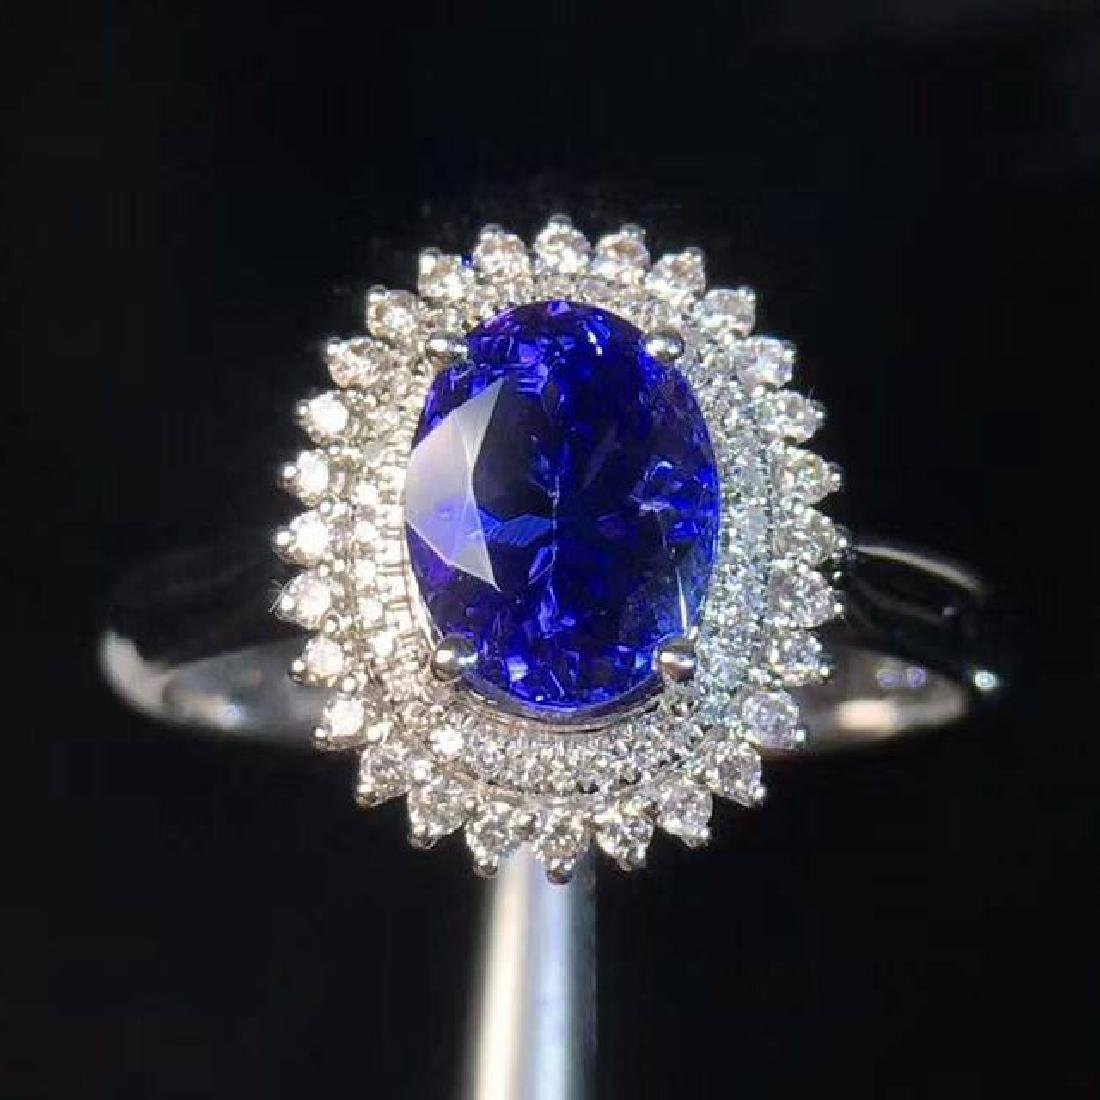 1.9ct Tanzanite Ring in 18kt White Gold